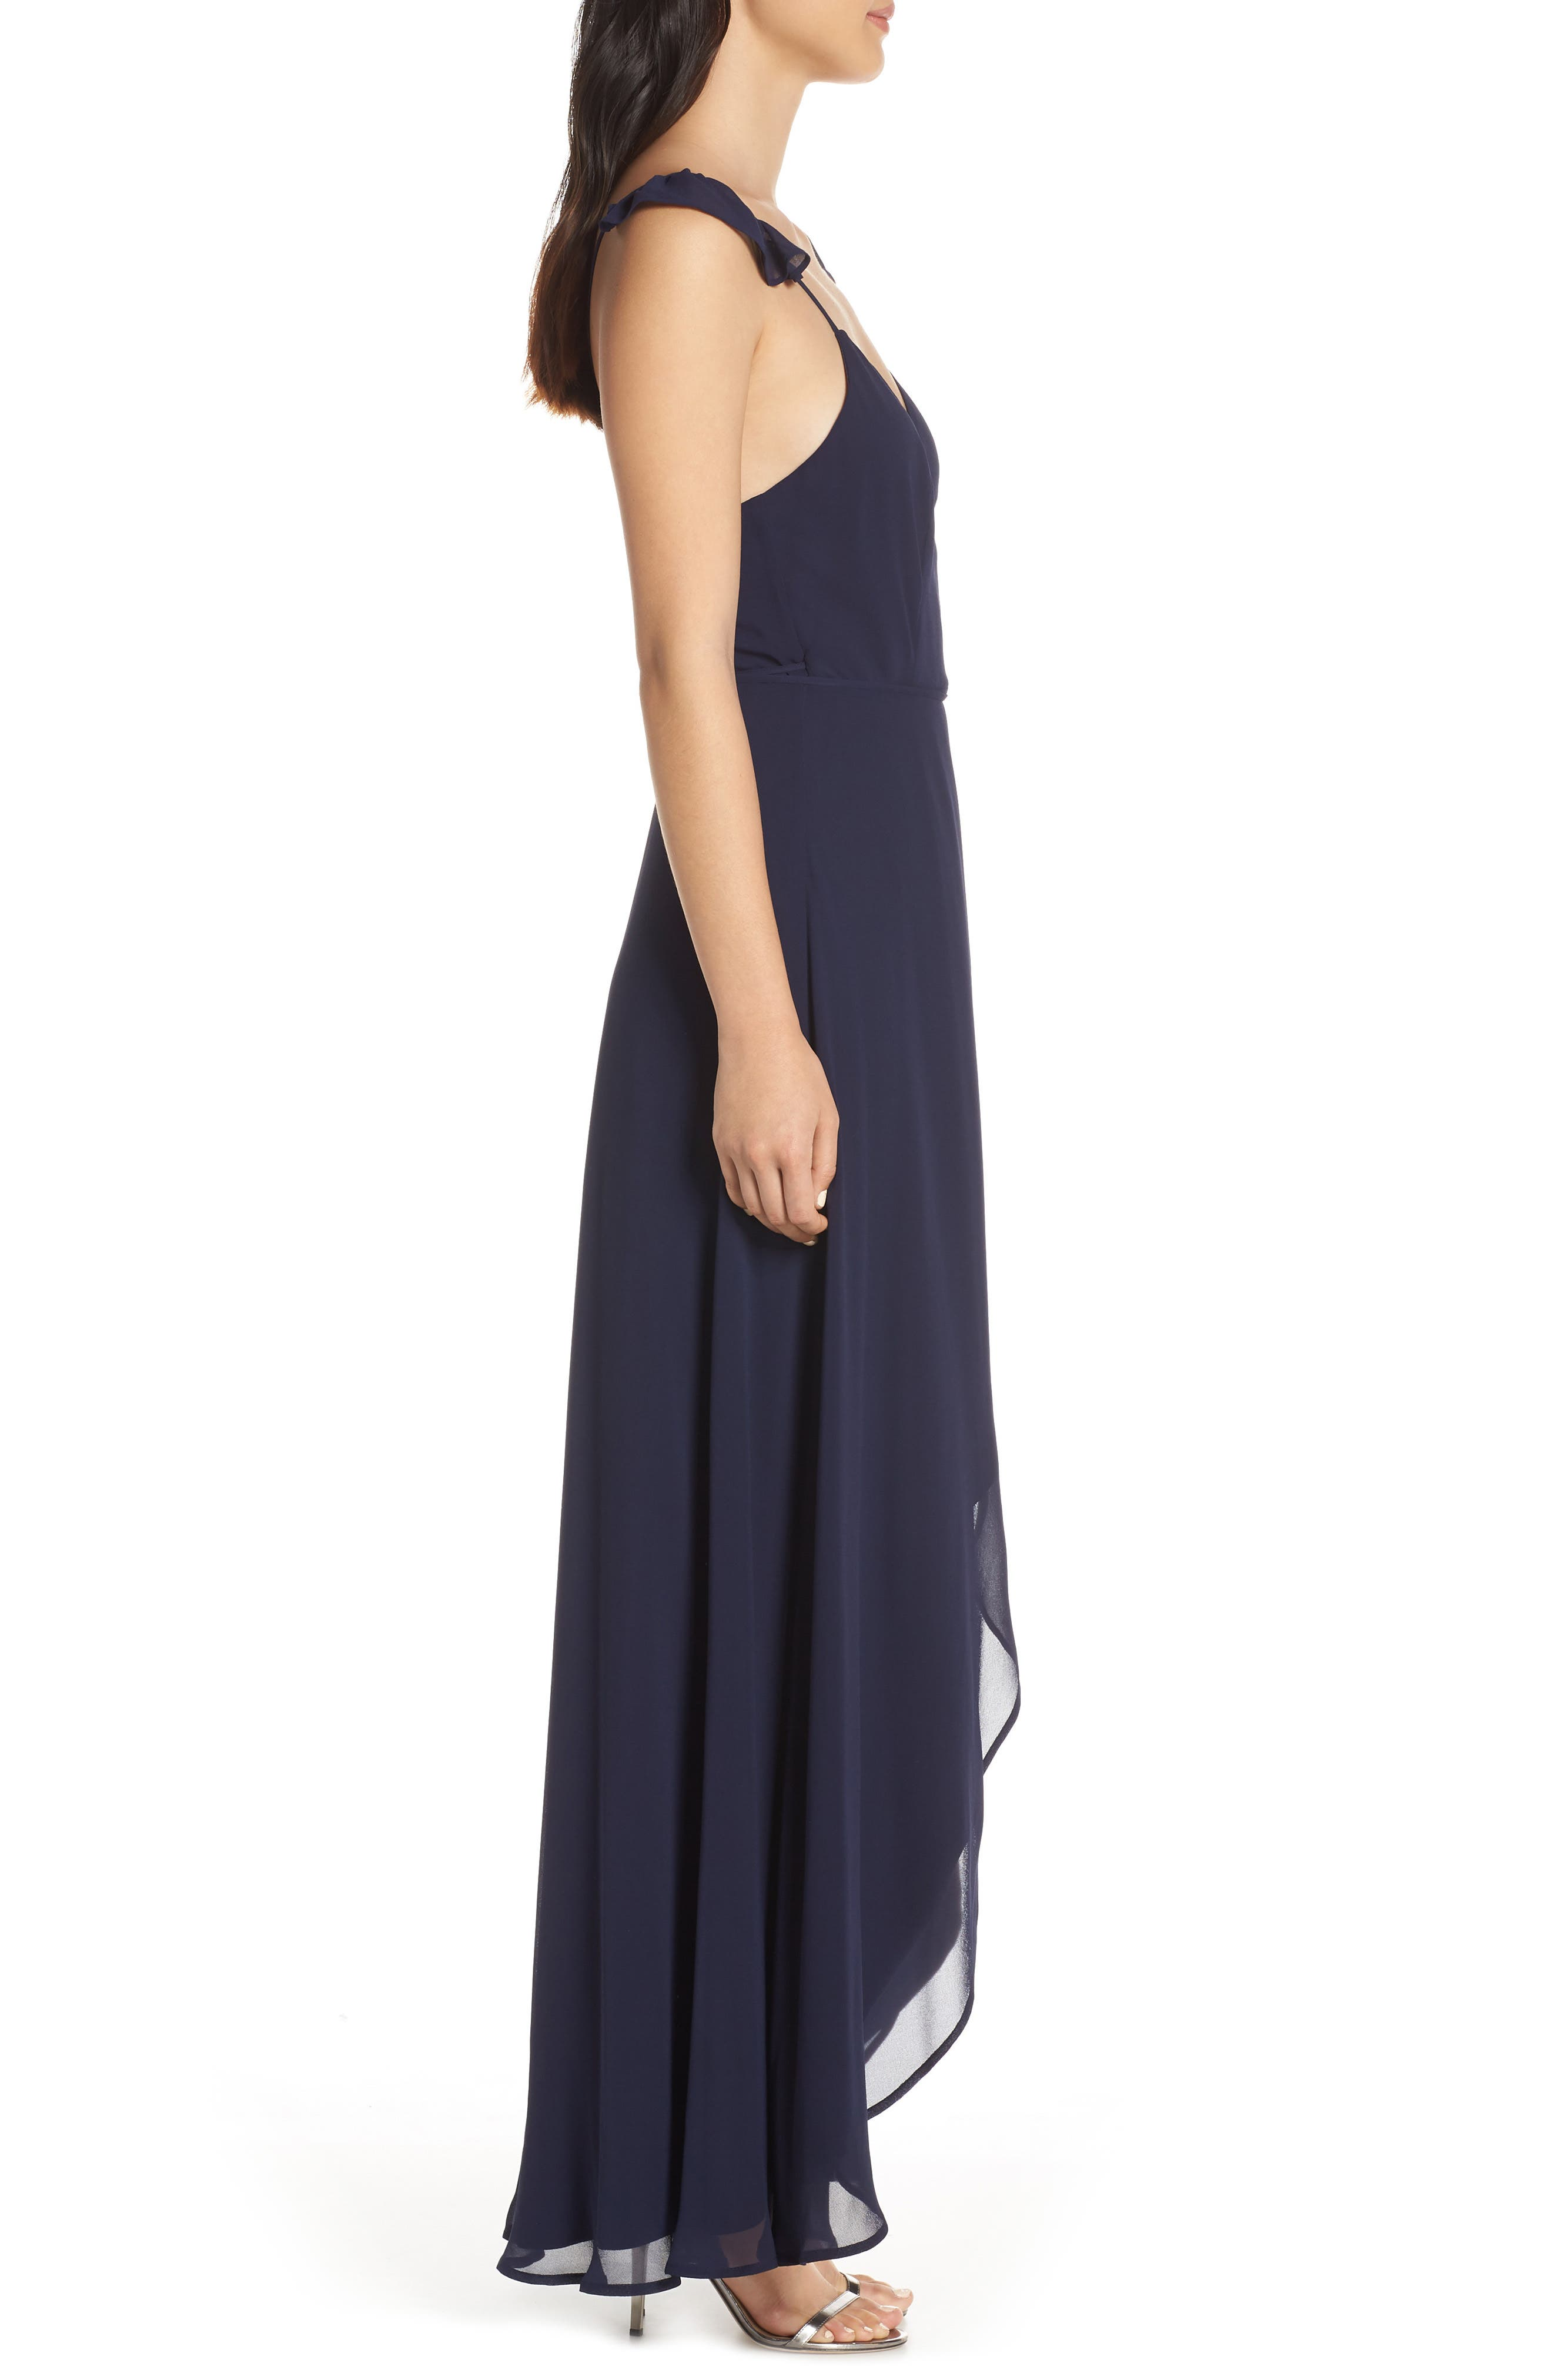 LULUS,                             Here's to Us High/Low Wrap Evening Dress,                             Alternate thumbnail 4, color,                             NAVY